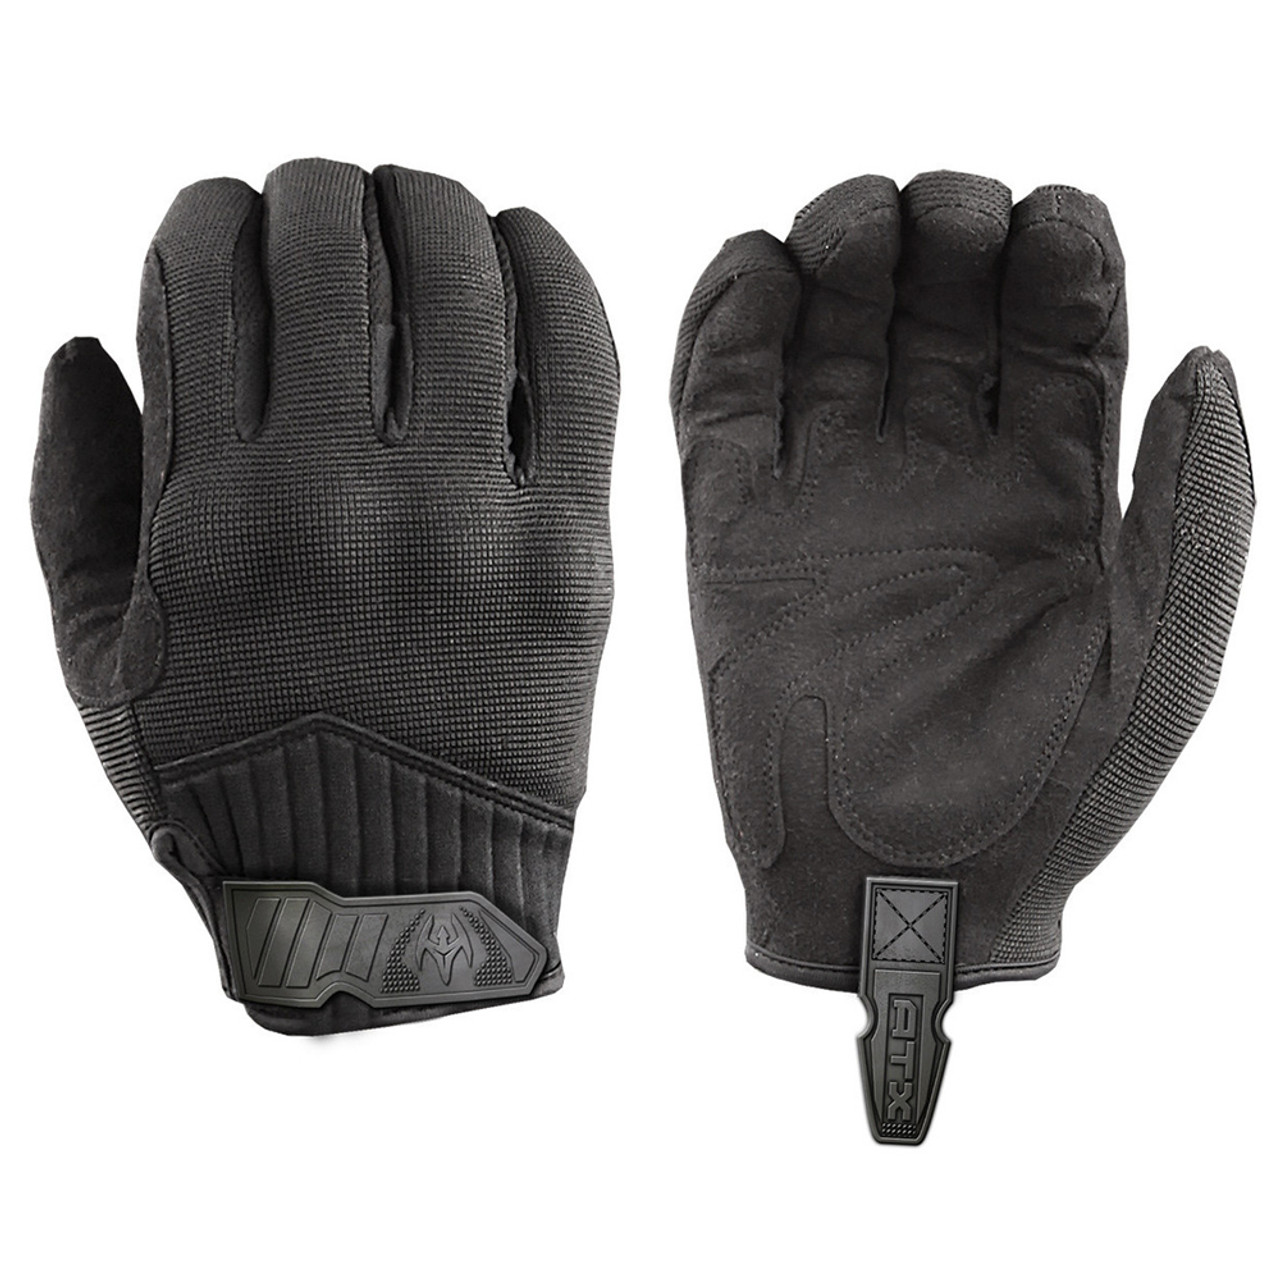 Damascu Thinsulate All Purpose Soft Leather Dress Gloves